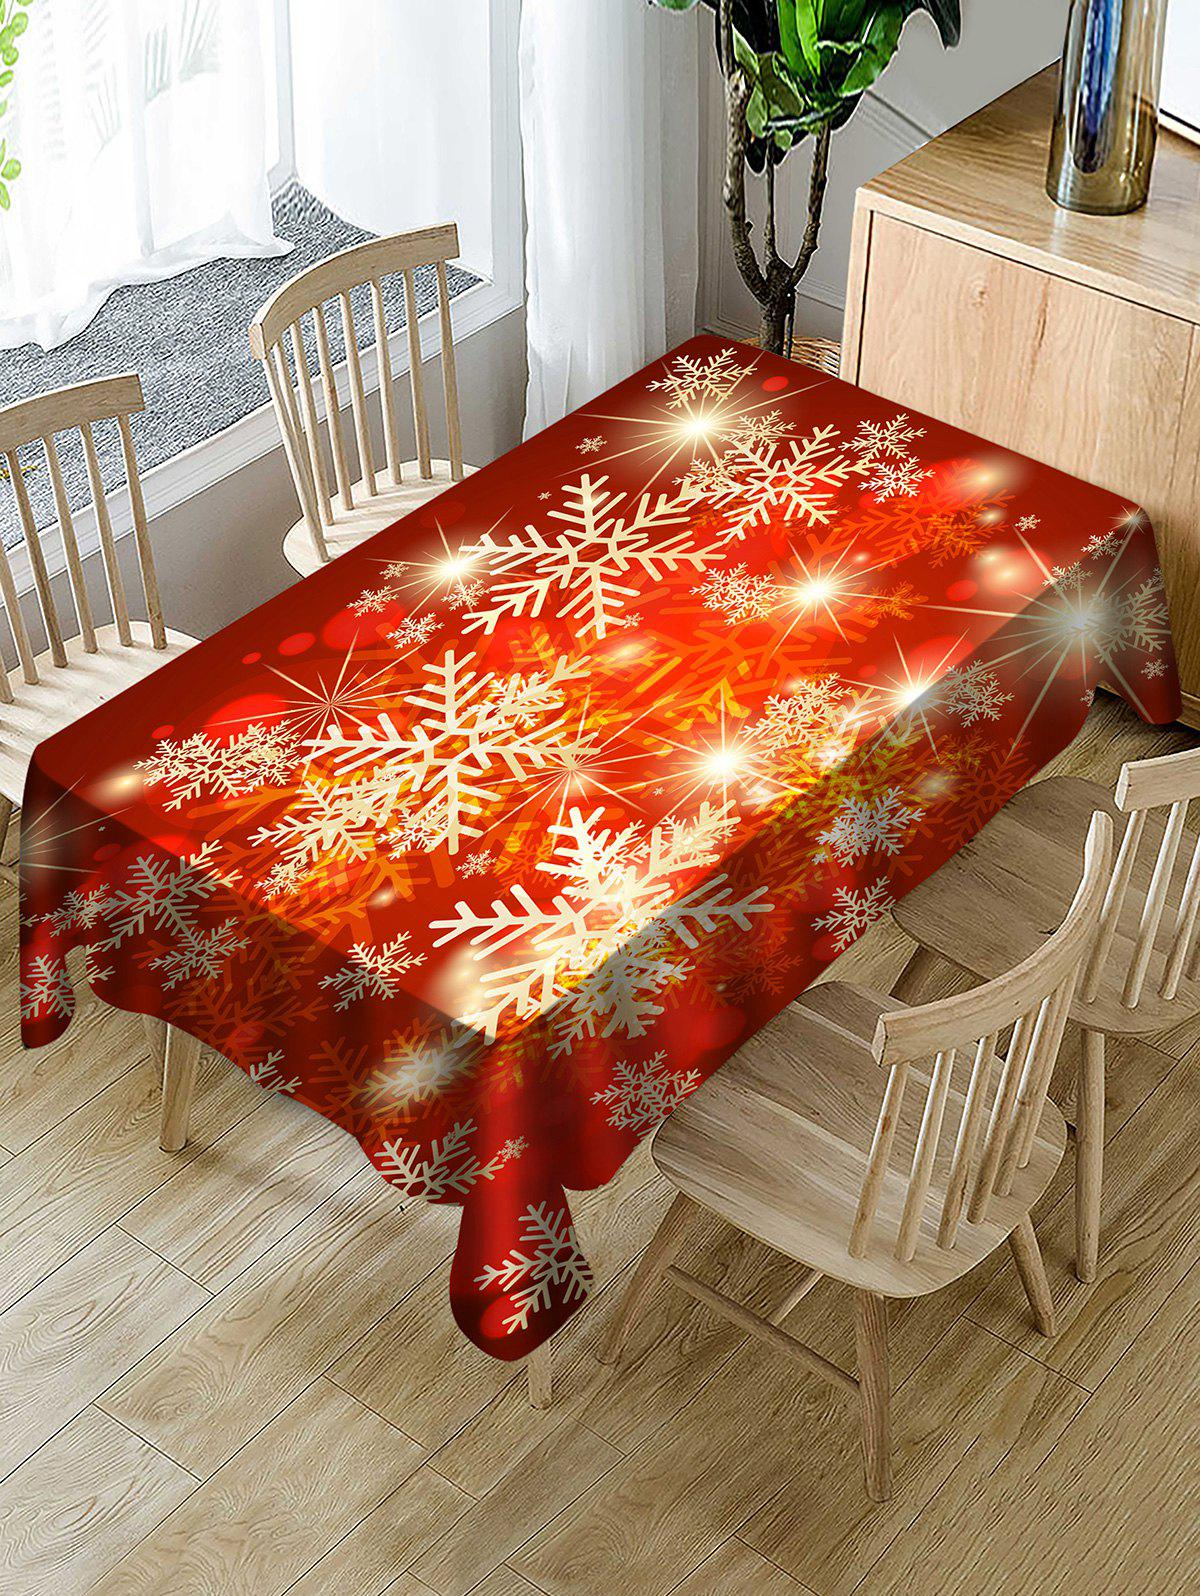 Shop Christmas Snowflake Waterproof Tablecloth